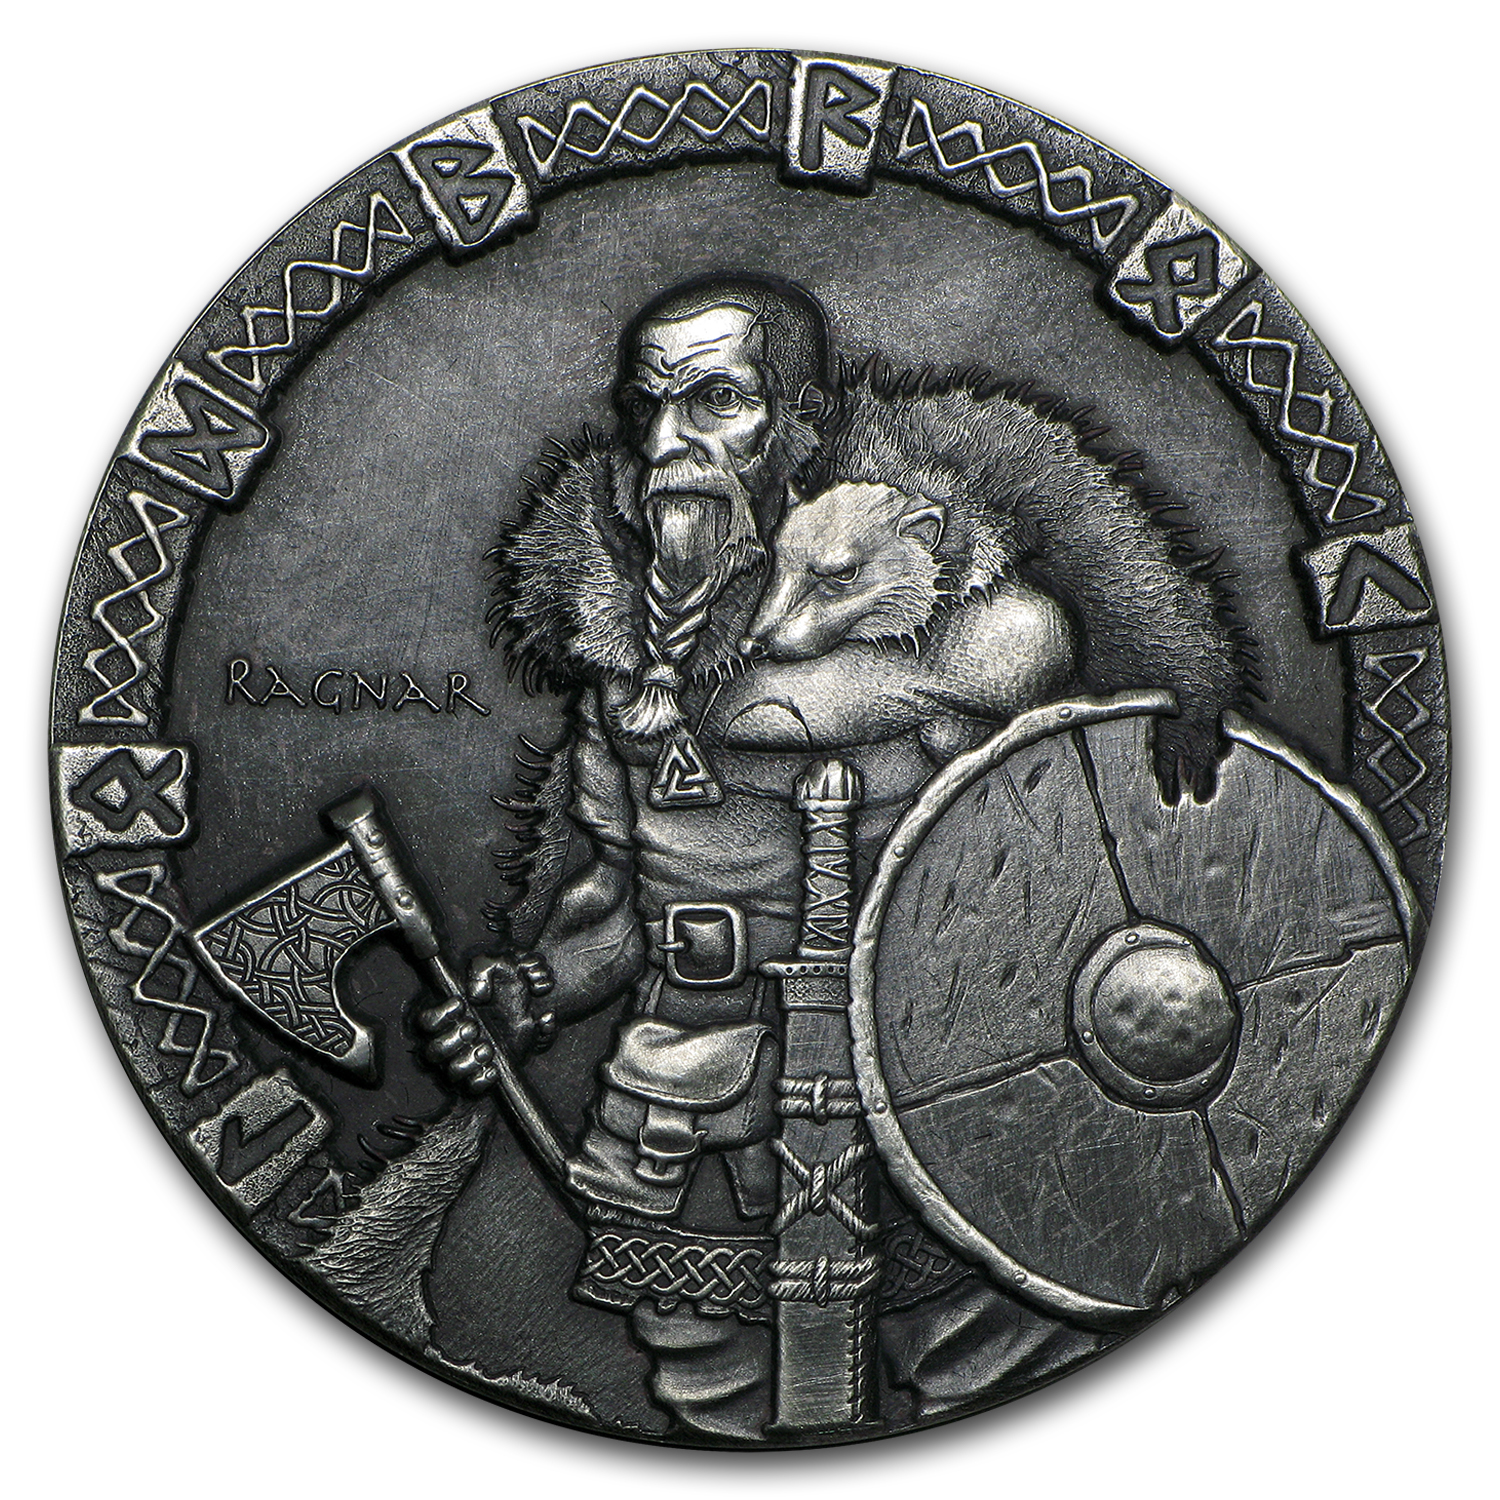 2015 2 oz Silver Coin Viking Series (Ragnar)